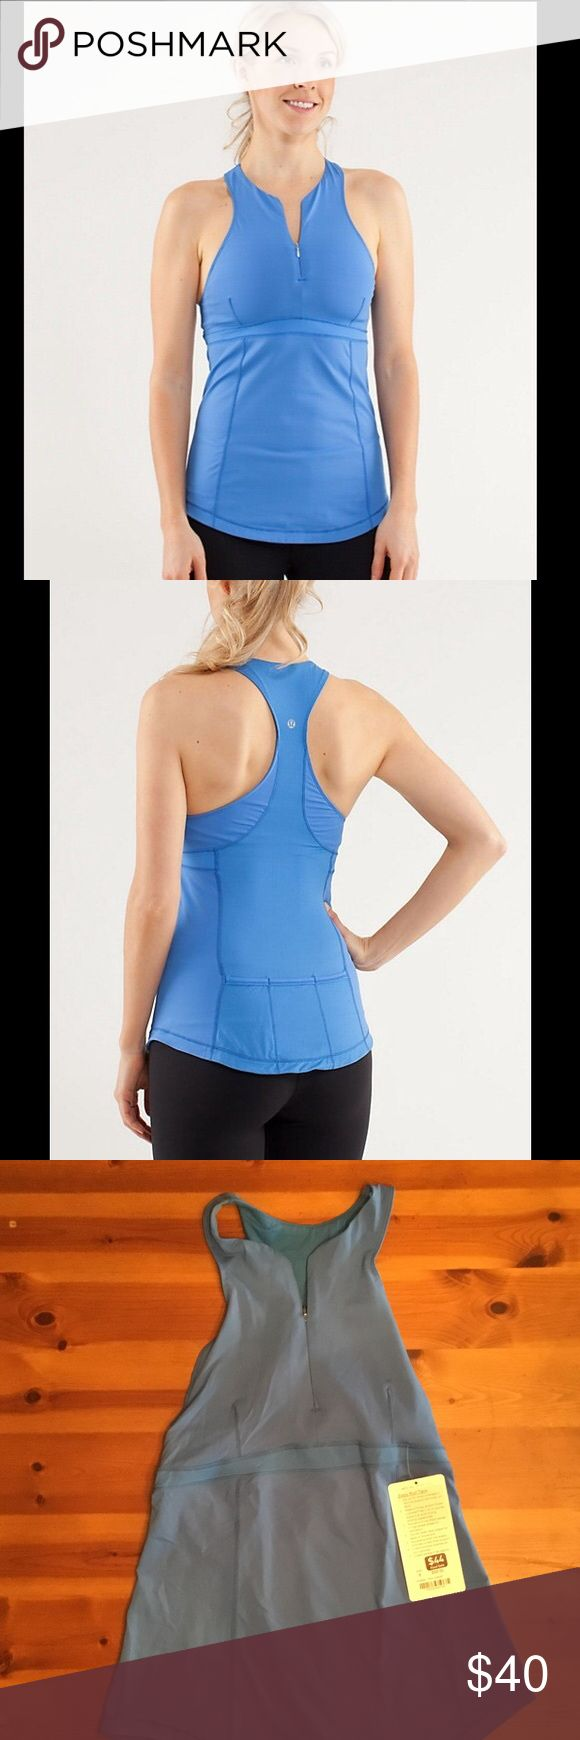 Lululemon Zippy Run Tank Great blue workout tank.  Zips up the front and has pockets in the back.The stock photos show the color best. lululemon athletica Tops Tank Tops